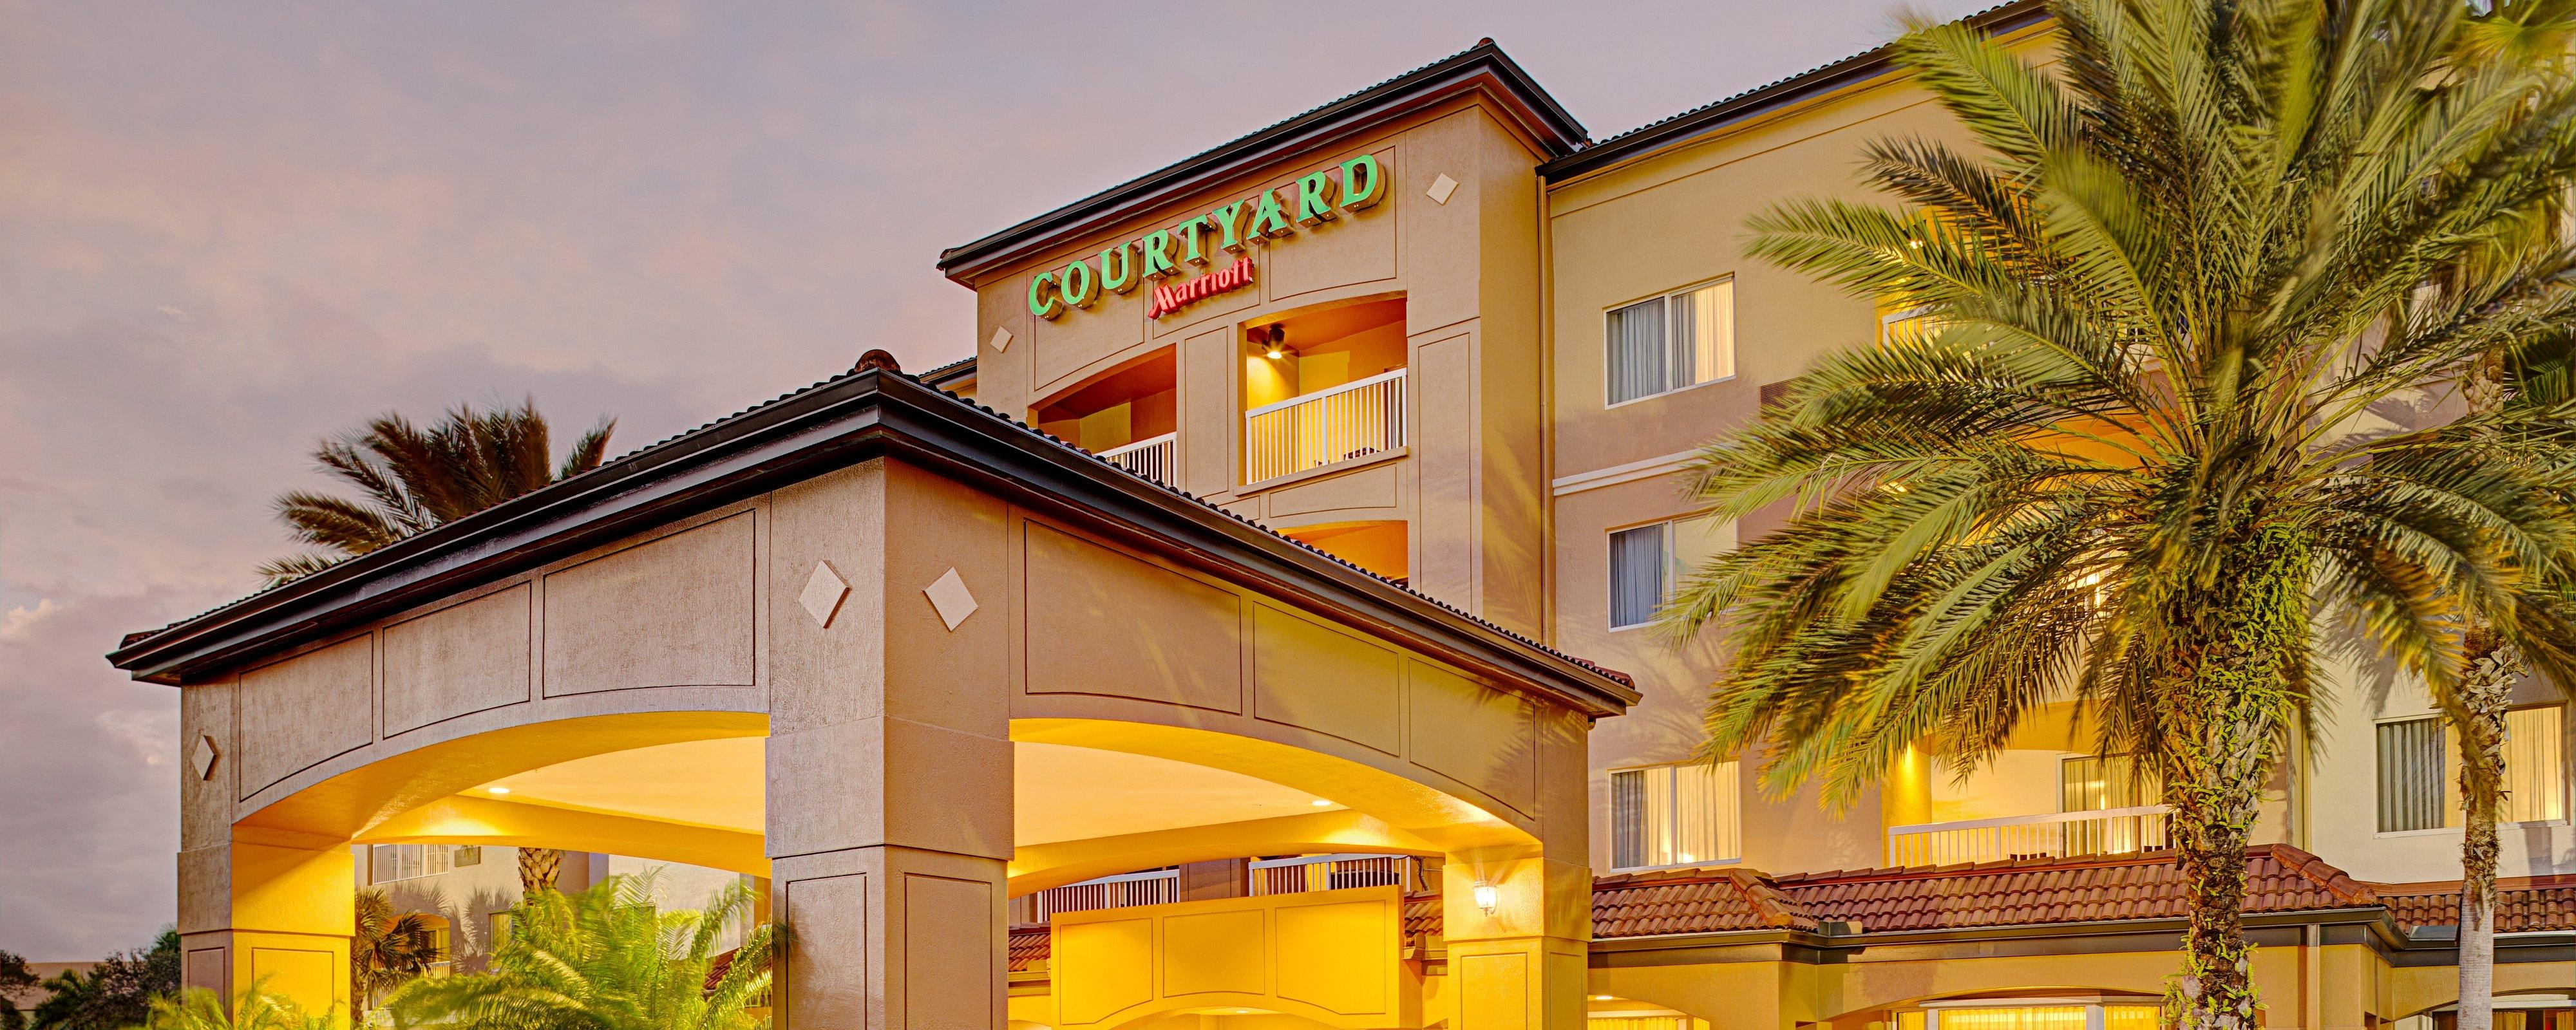 West Palm Beach Hotels: Courtyard West Palm Beach Airport Hotel ...